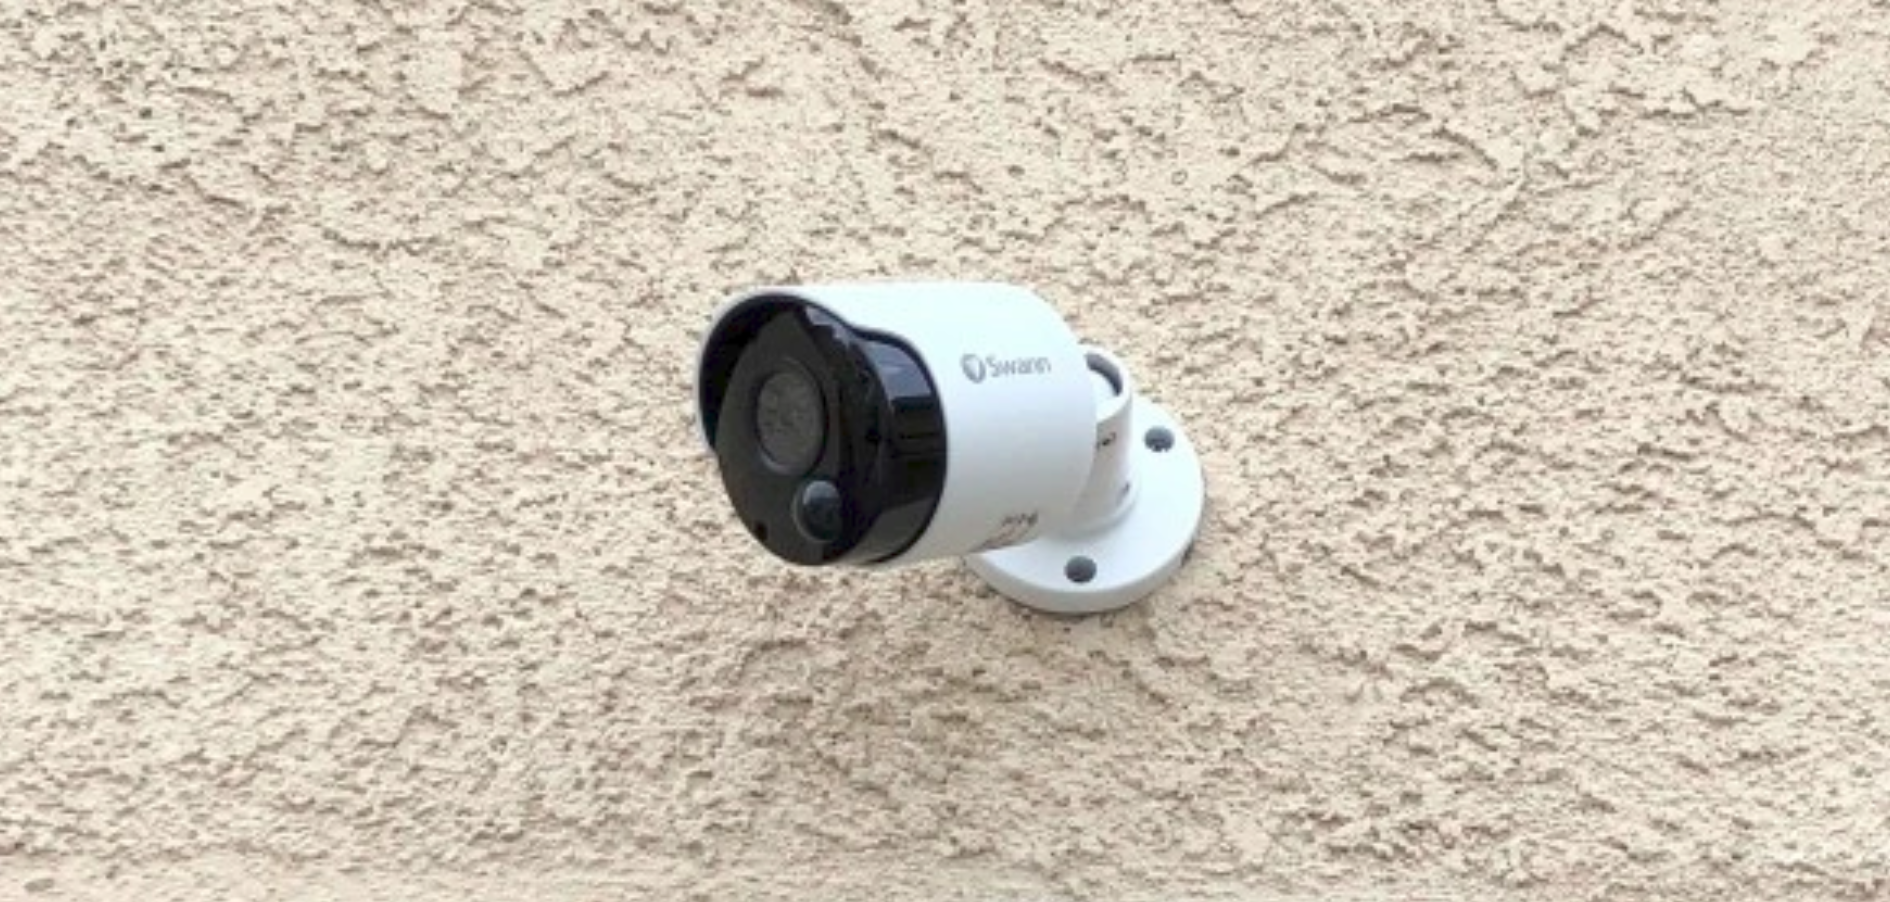 Review: Swann 4K Outdoor Bullet Camera